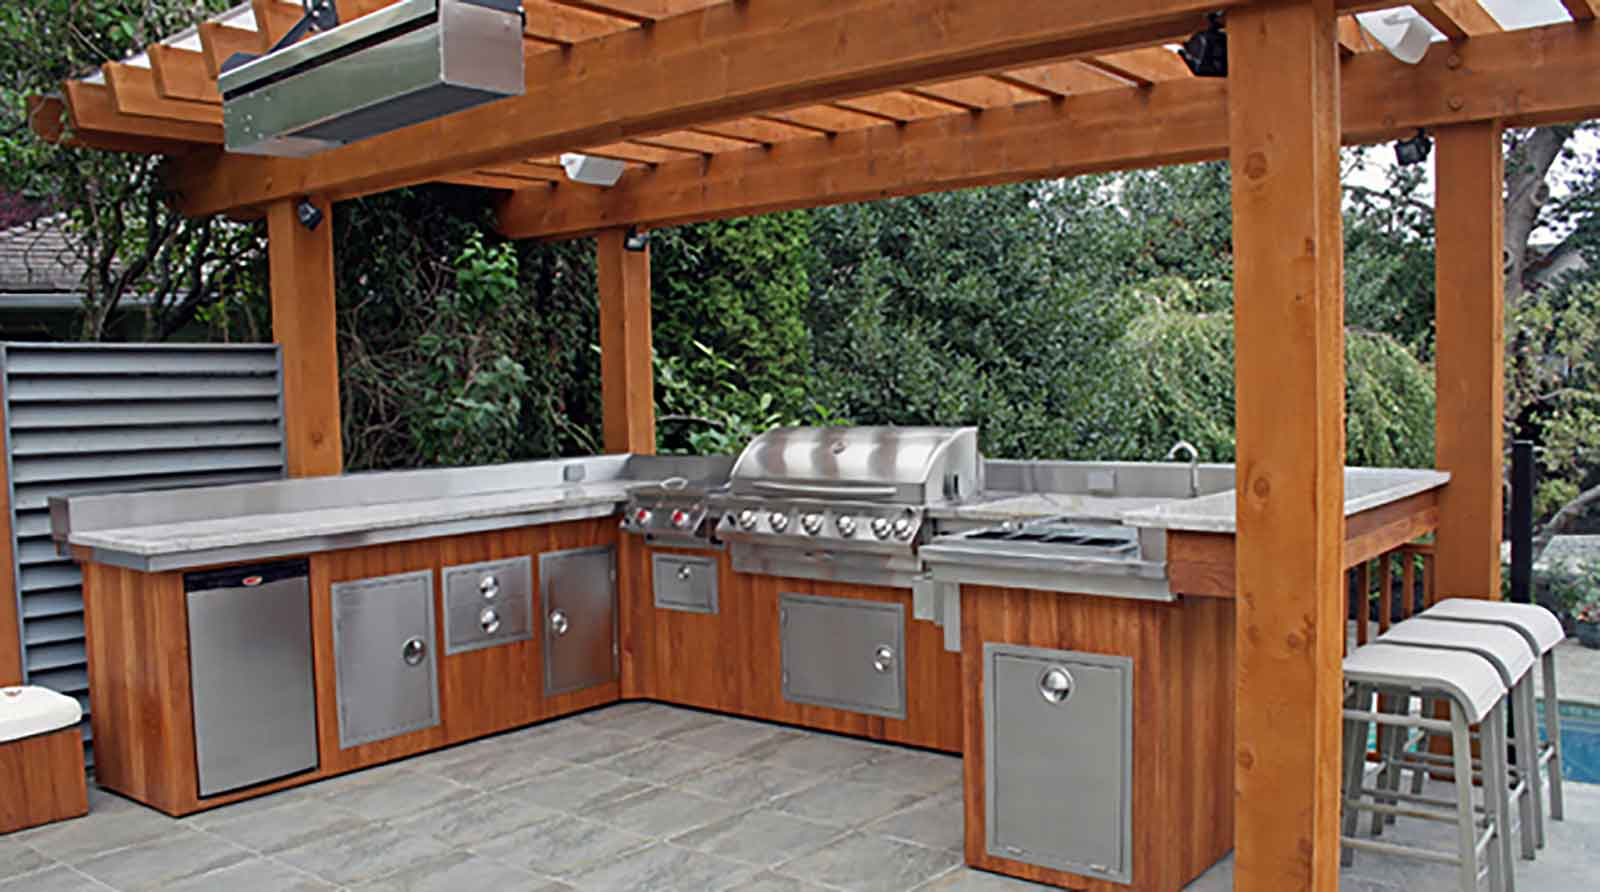 Custom designed outdoor kitchens azuro concepts for Outdoor kitchen ideas pictures